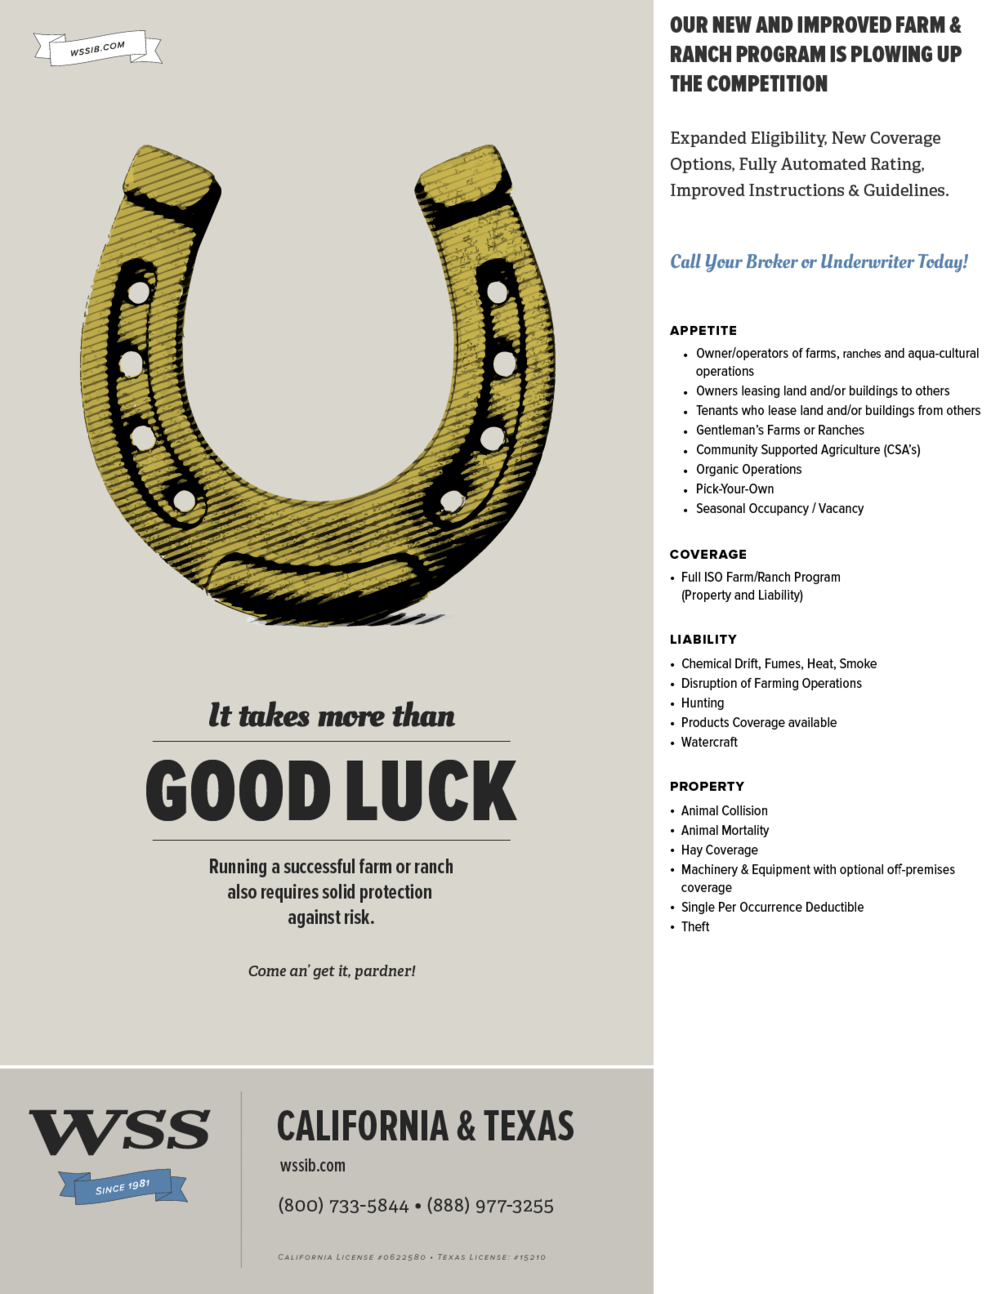 WSS-Flyer-FarmAndRanch.png